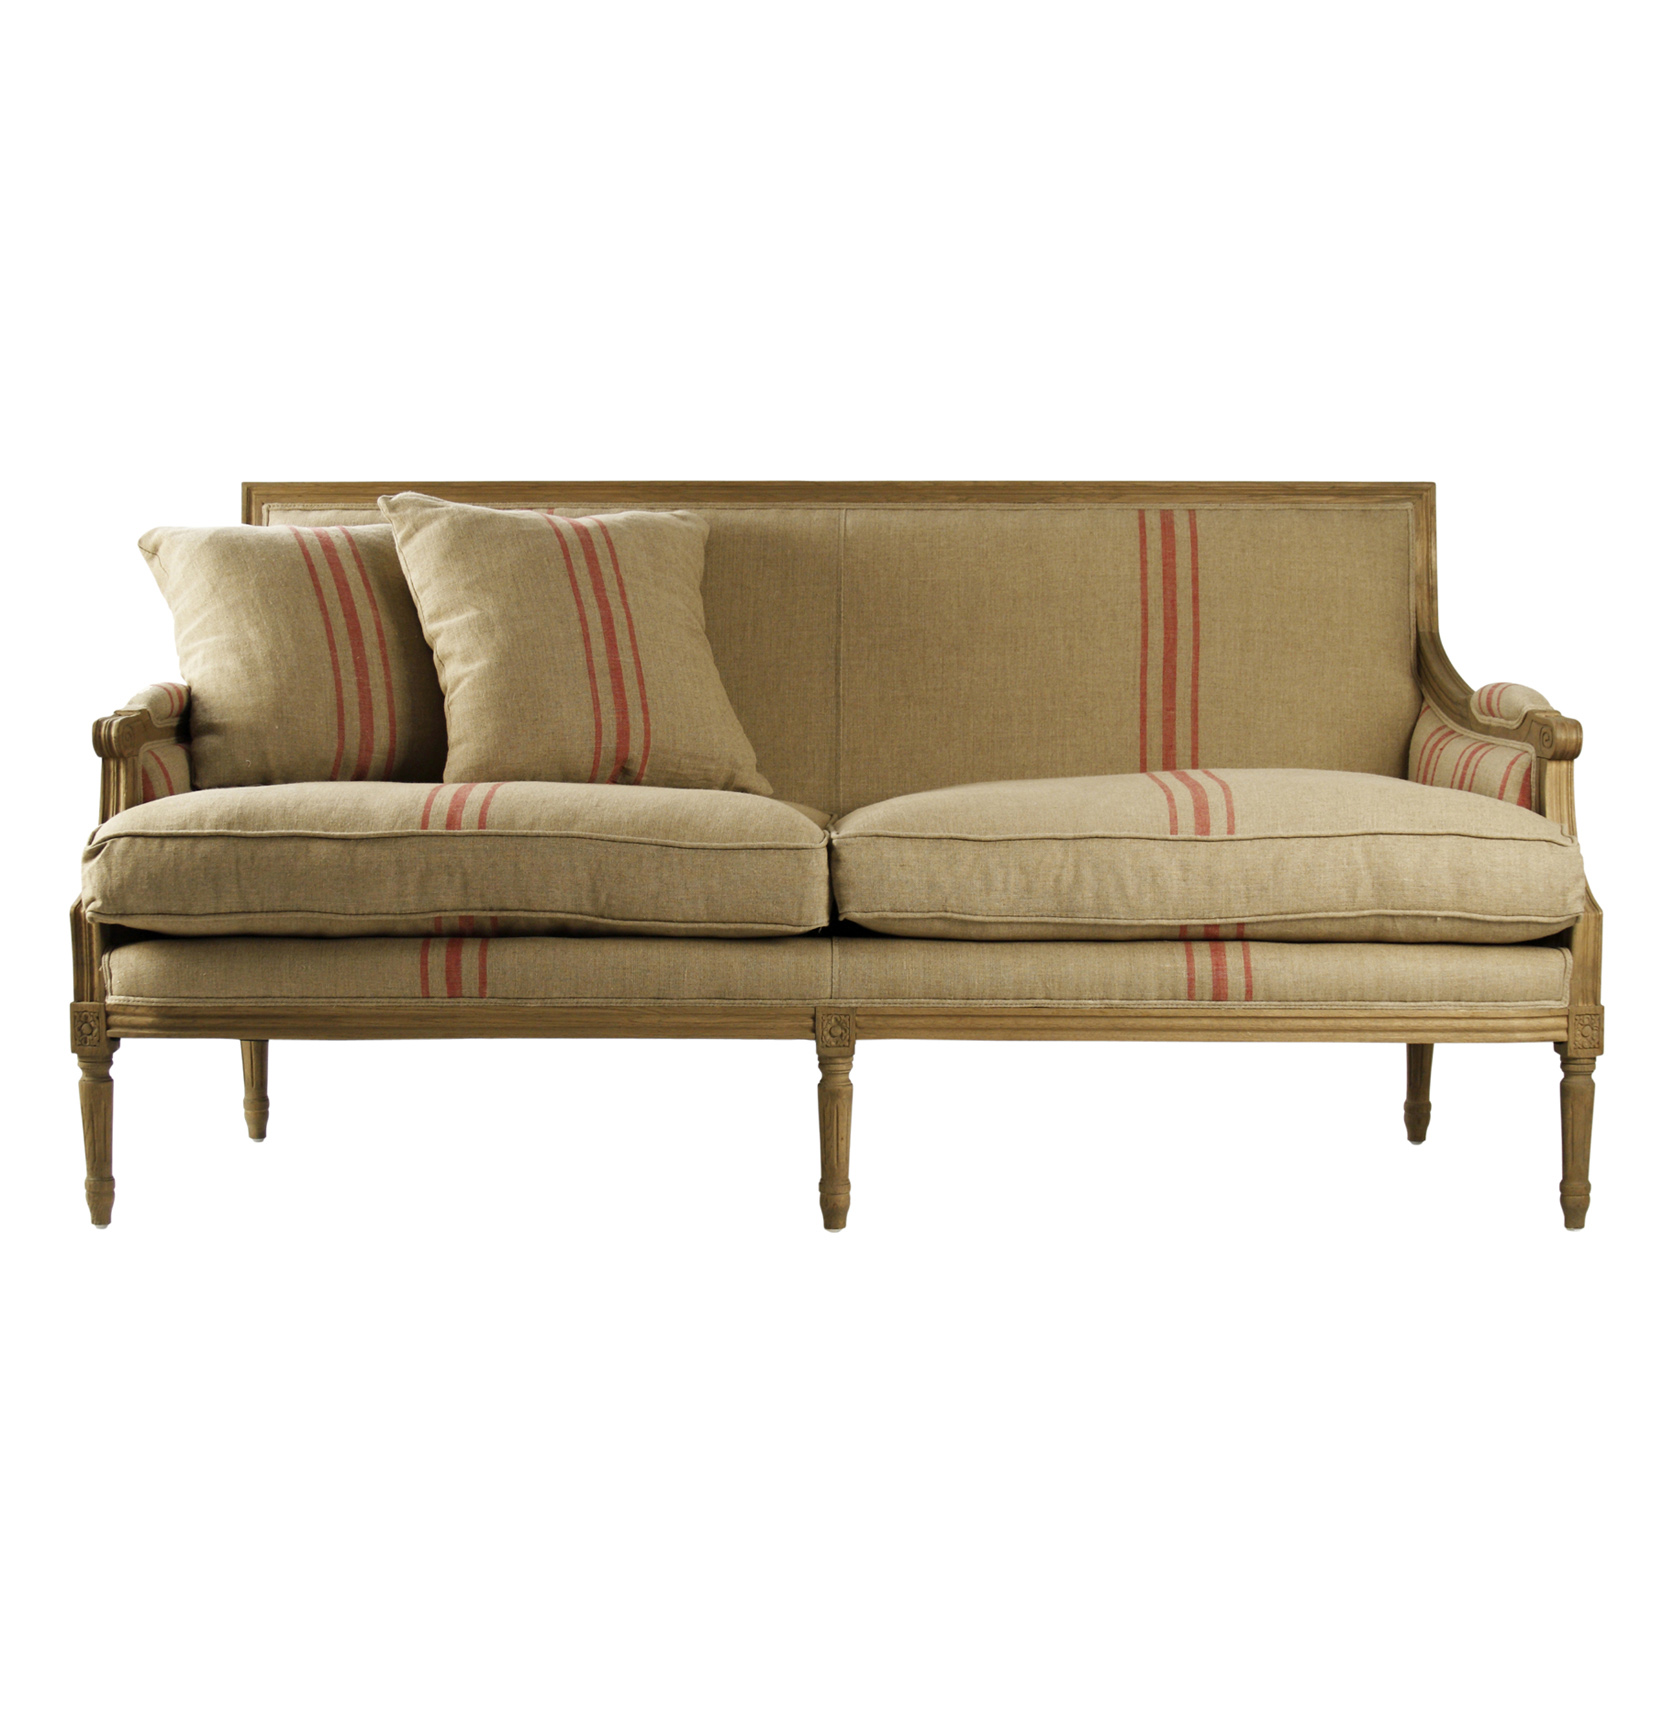 St Germain French Style Red Stripe Linen Louis Xvi Sofa Sofa